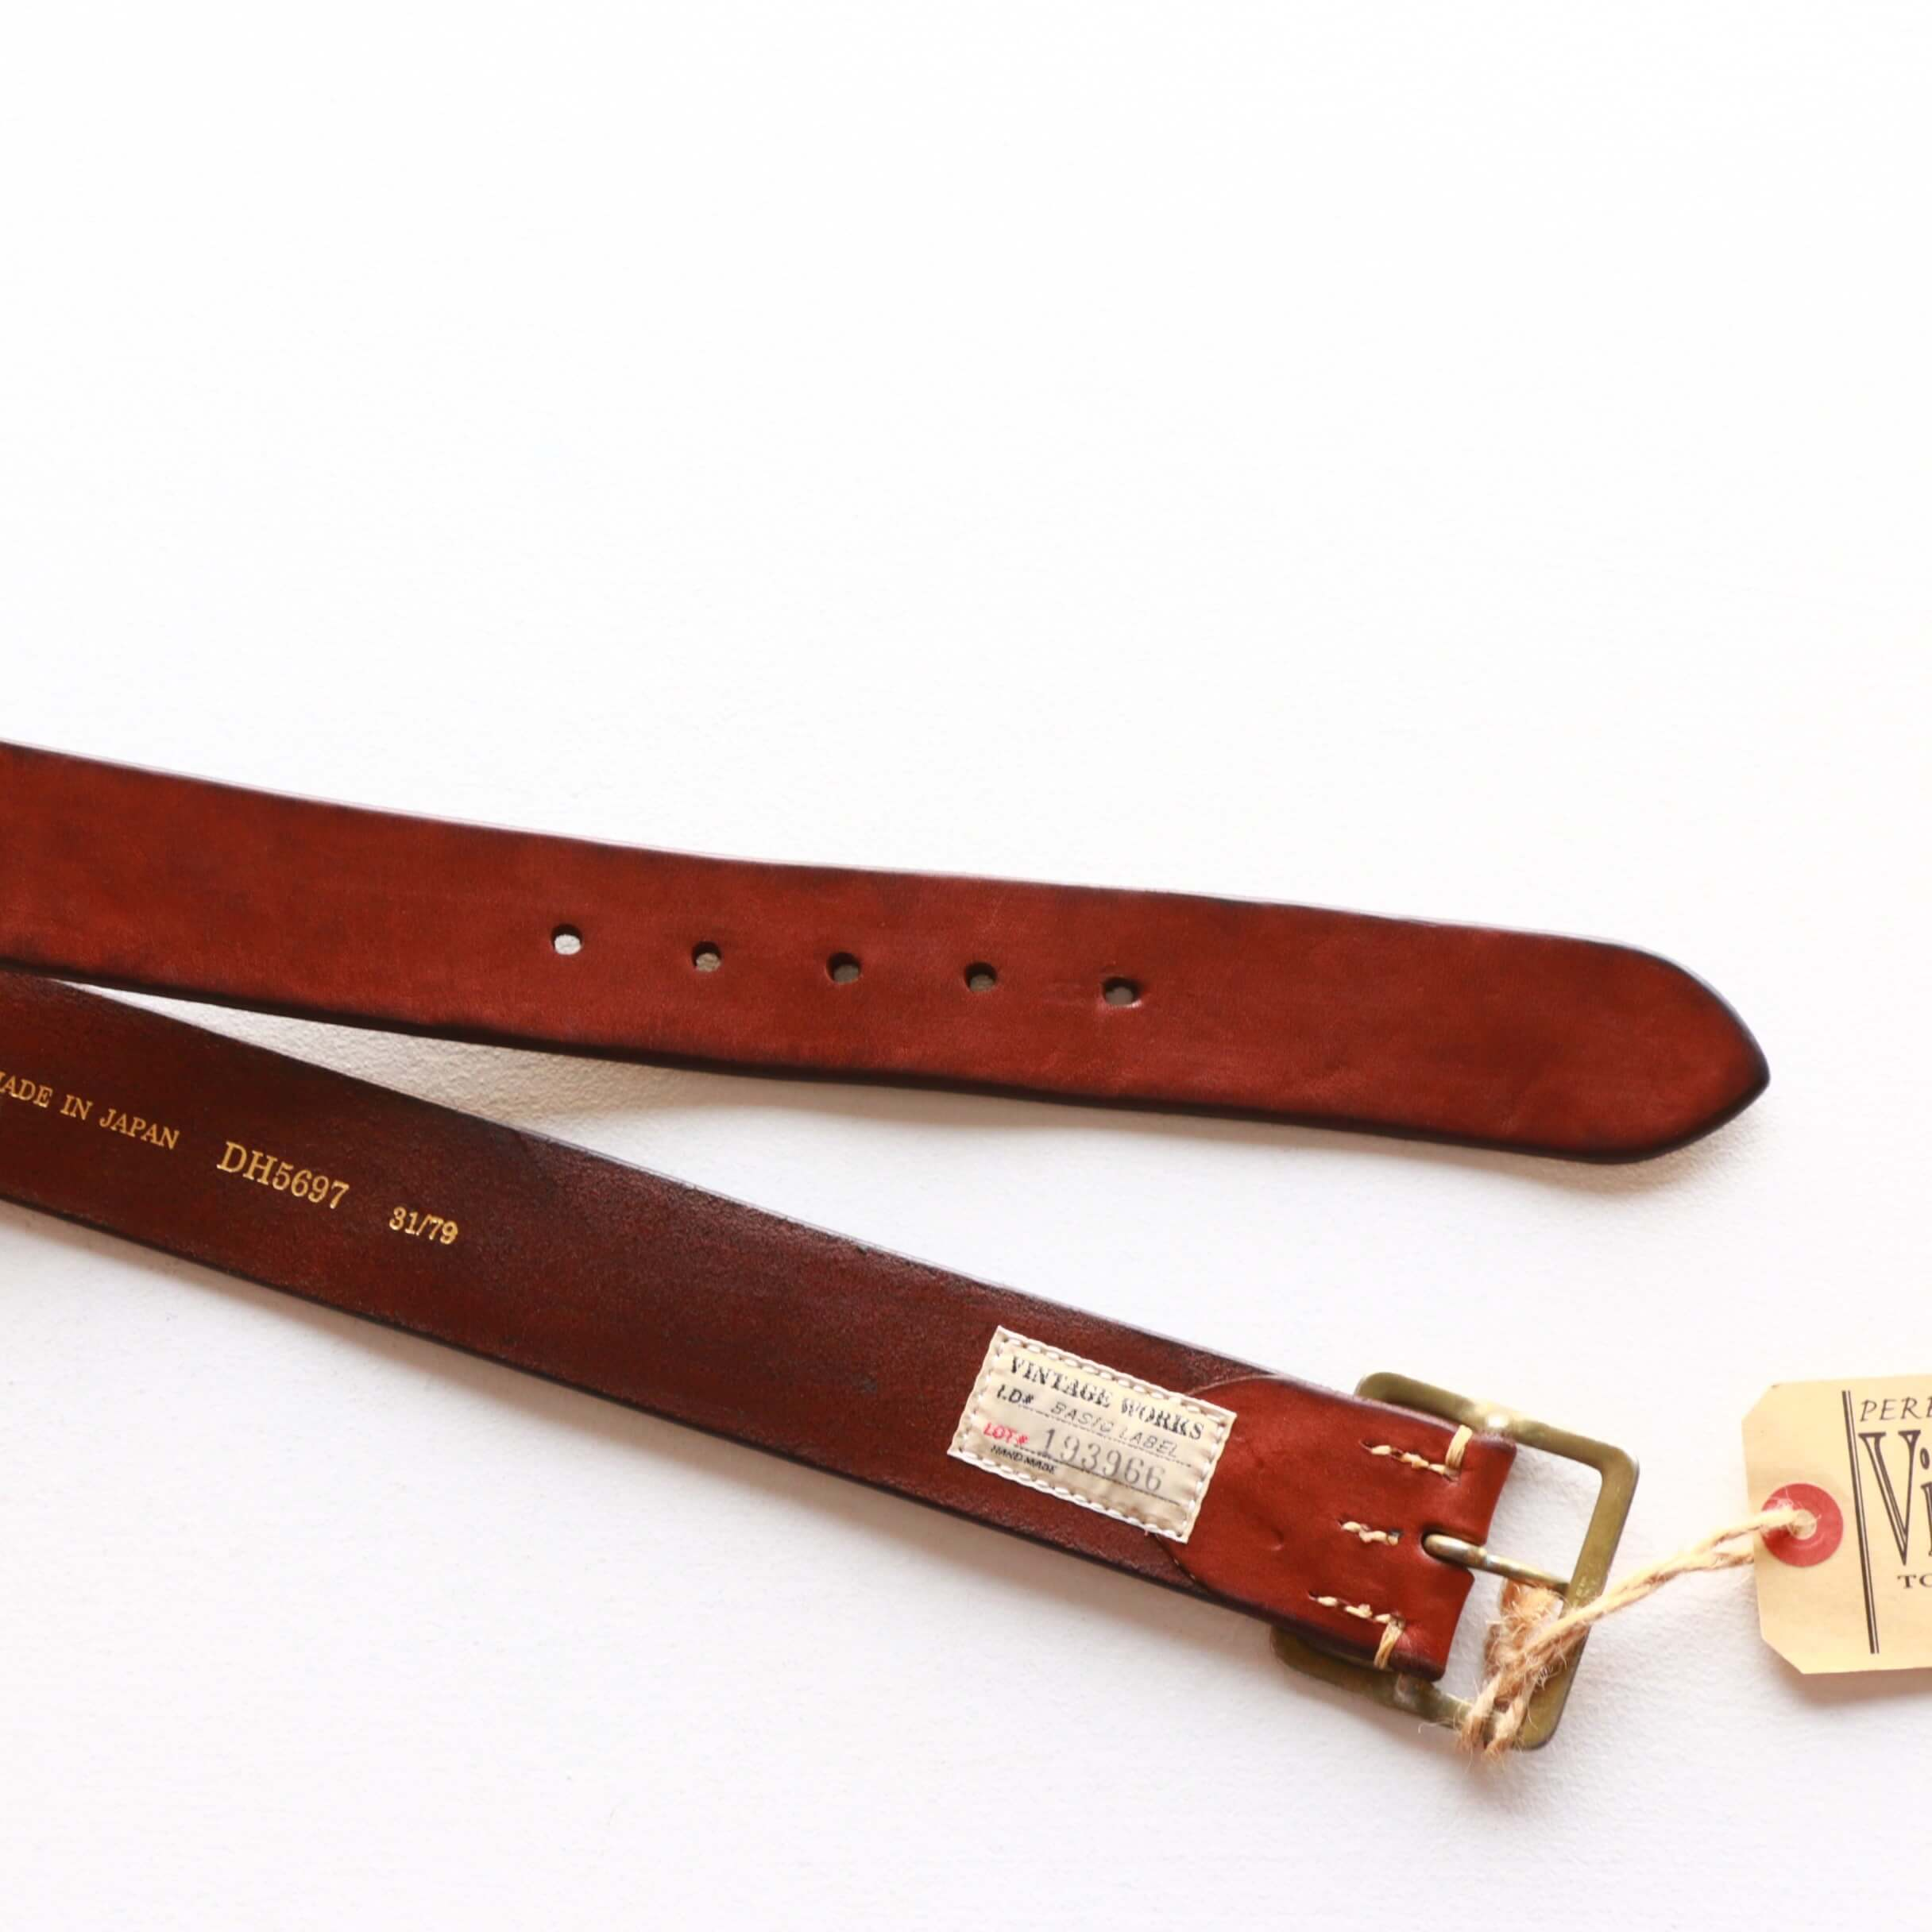 Vintage Works ヴィンテージワークス Leather belt 5Hole レザーベルト 5ホール DH5697